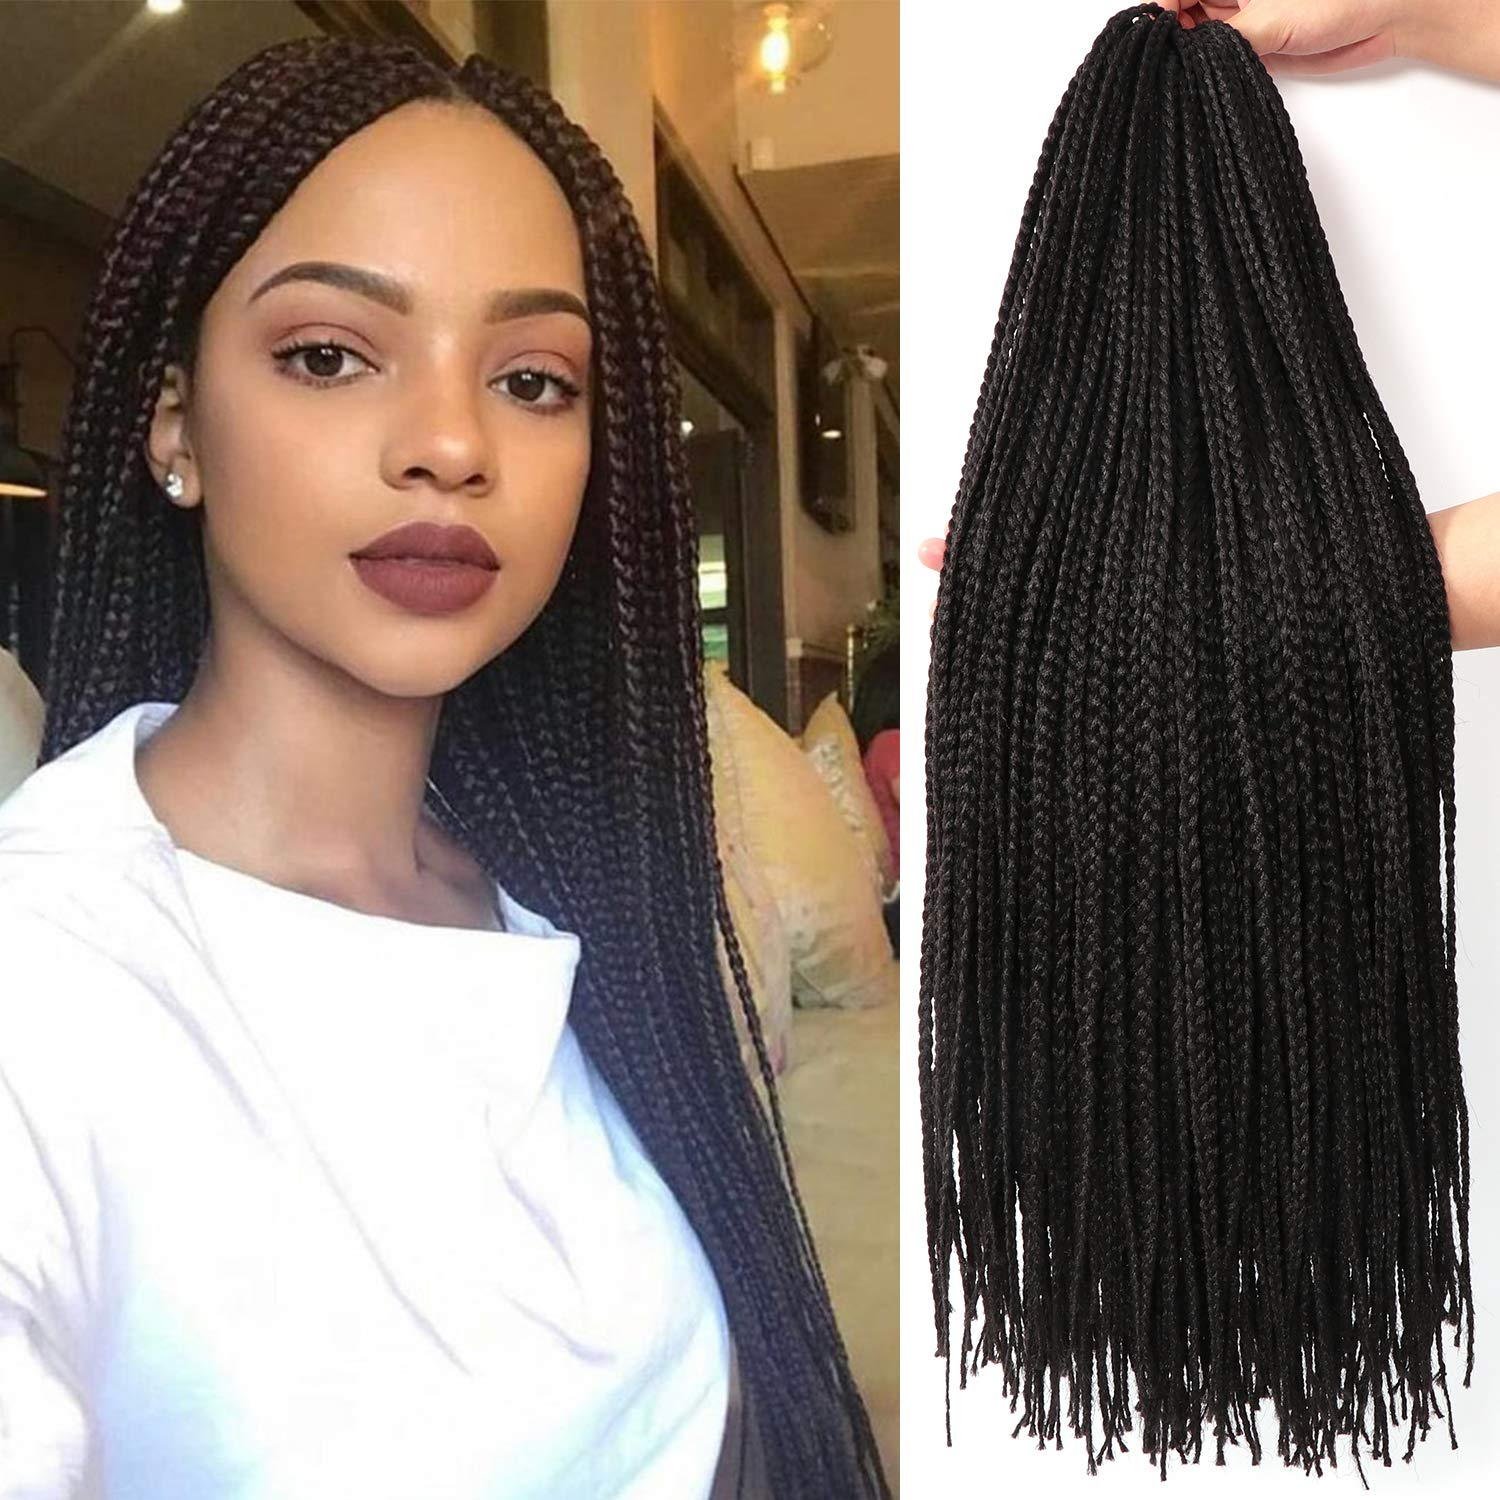 26 Inch, 7 Packs, Long Box Braids - Crochet Braids